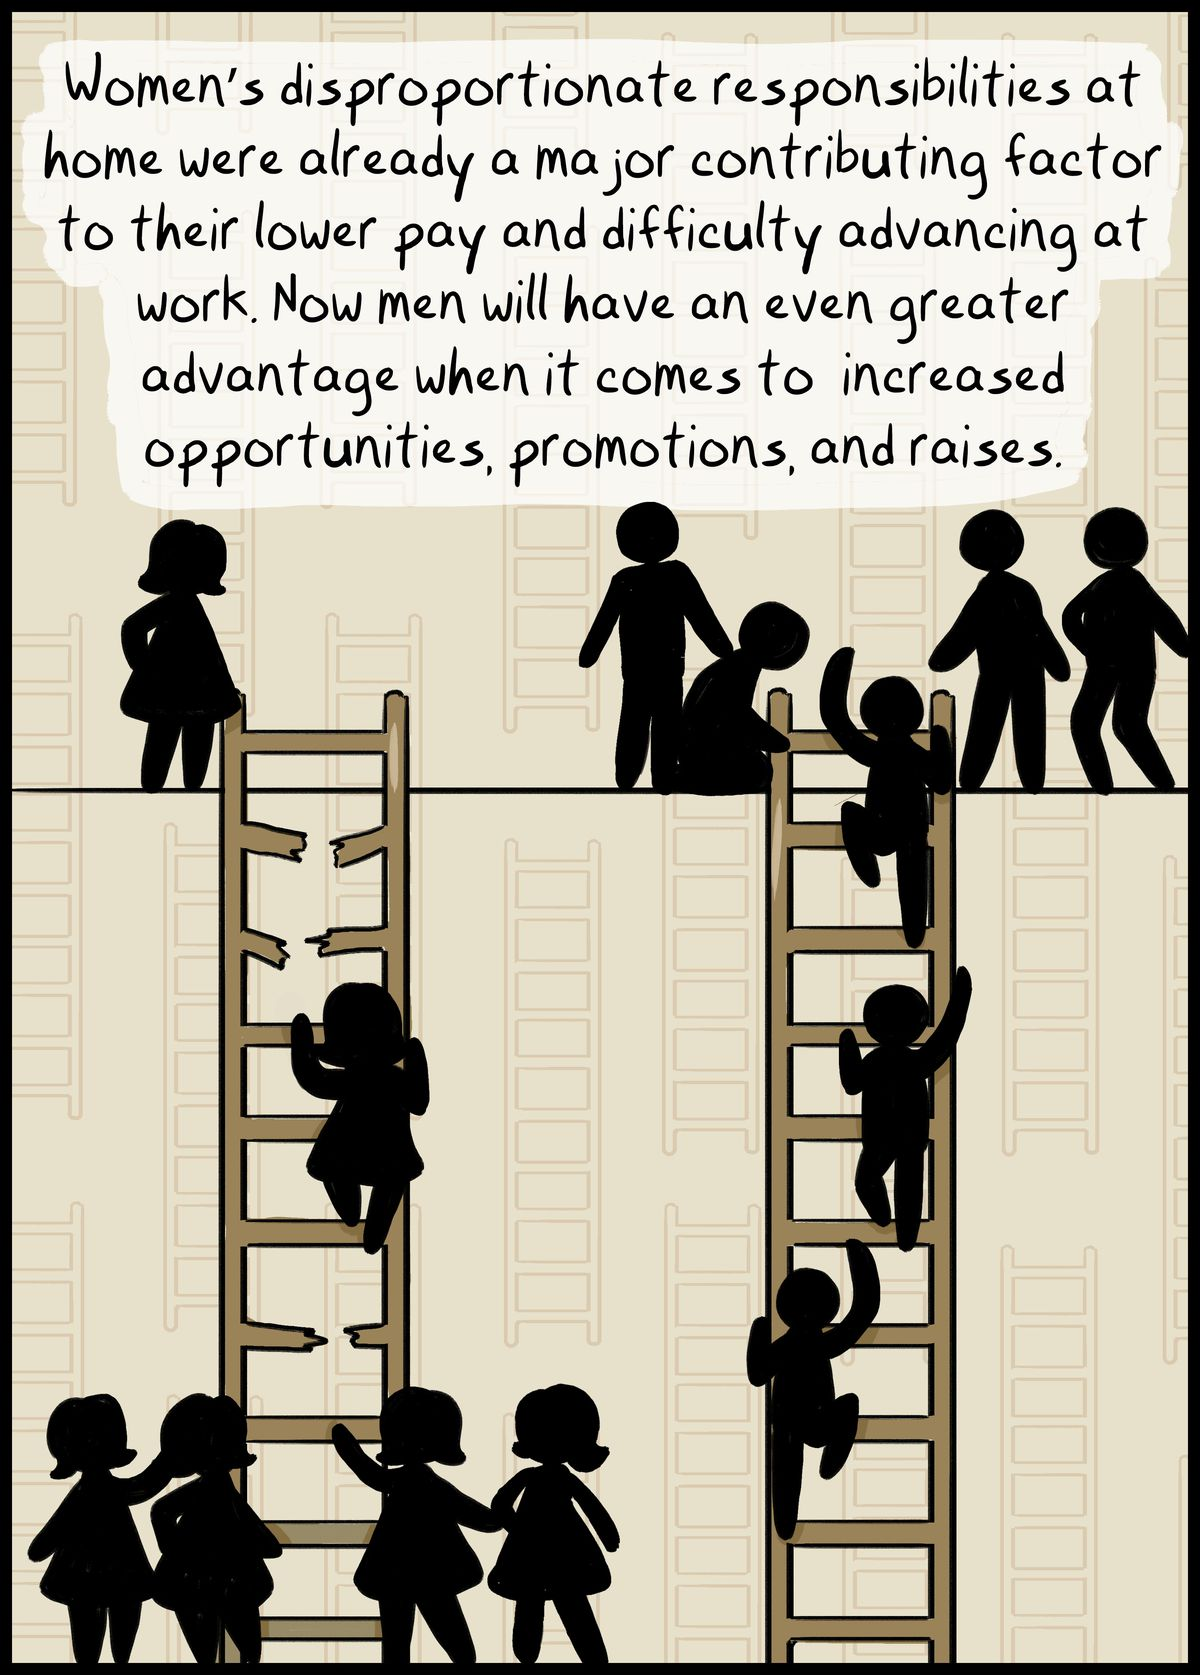 Women's disproportionate responsibilities at home were already a major contributing factor to their lower pay and difficulty advancing at work. Now men will have an even greater advantage when it comes to increased opportunities, promotions, and raises.